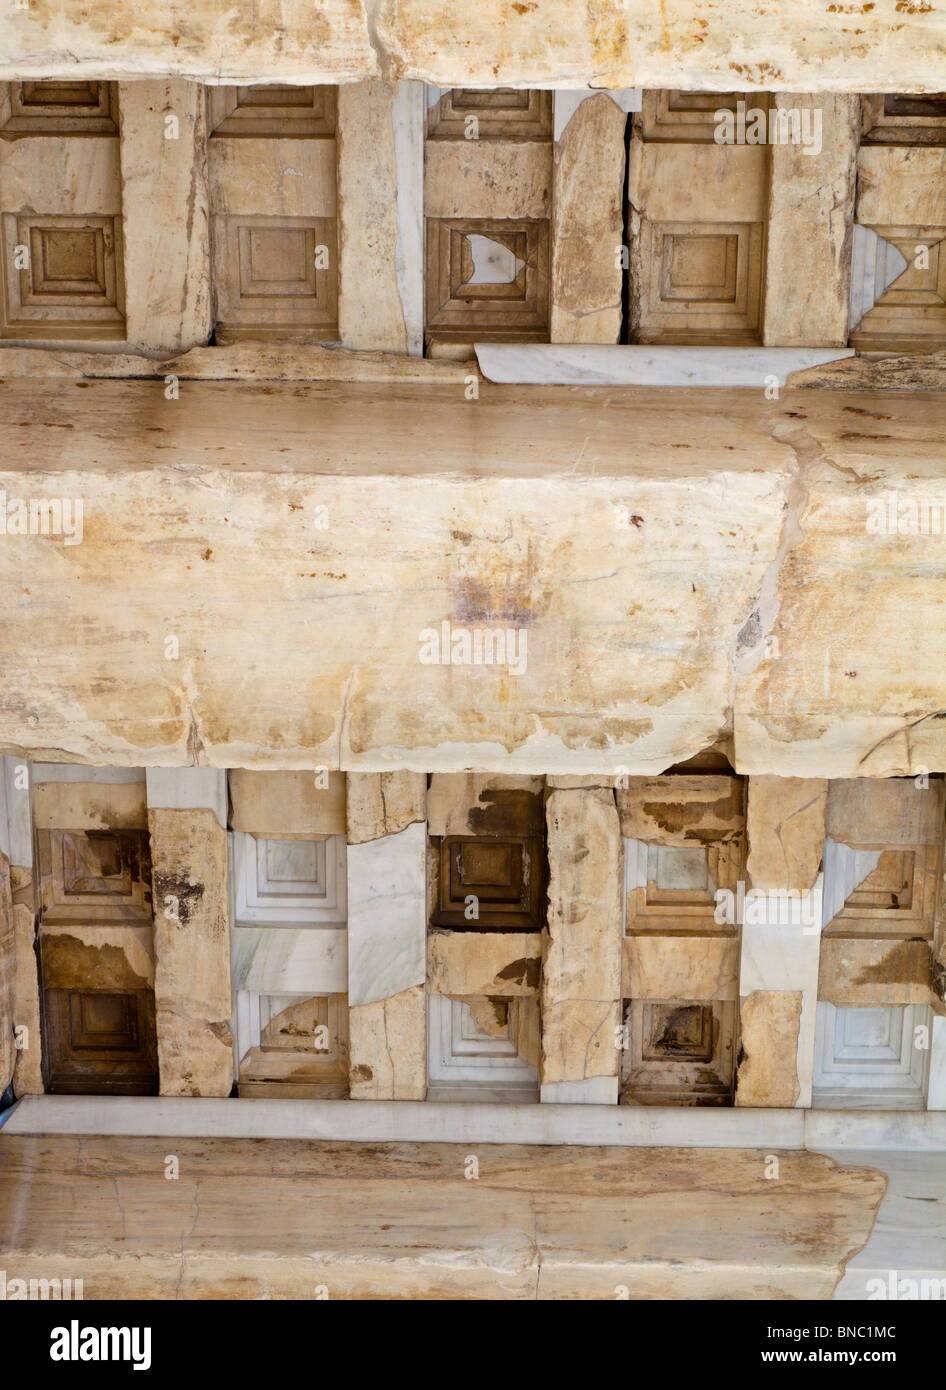 Ceiling coffers of the Propylaea of the Athenian acropolis after renovation was completed in 2010. Stock Photo